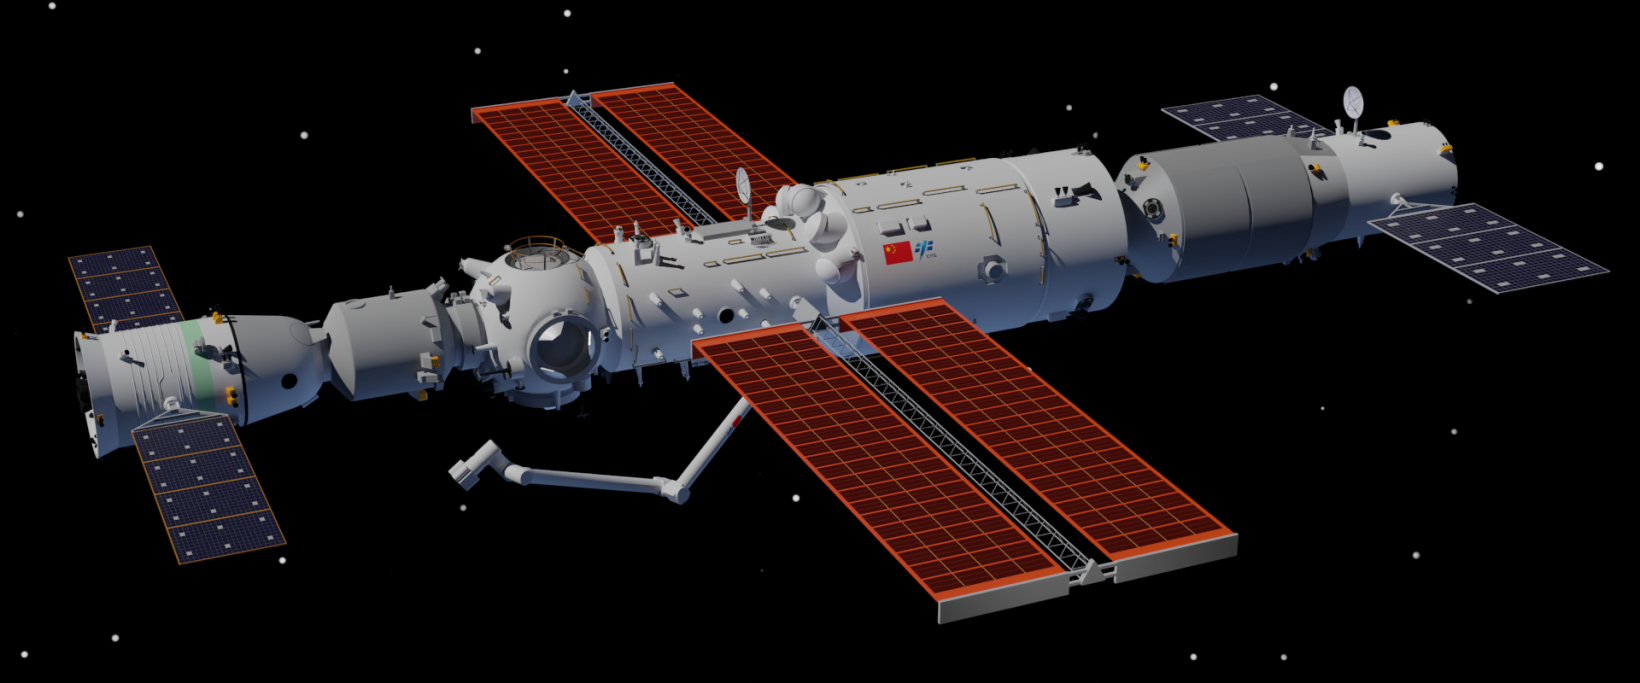 Read more about the article 4 things to know about China's longest-ever crewed spaceflight mission